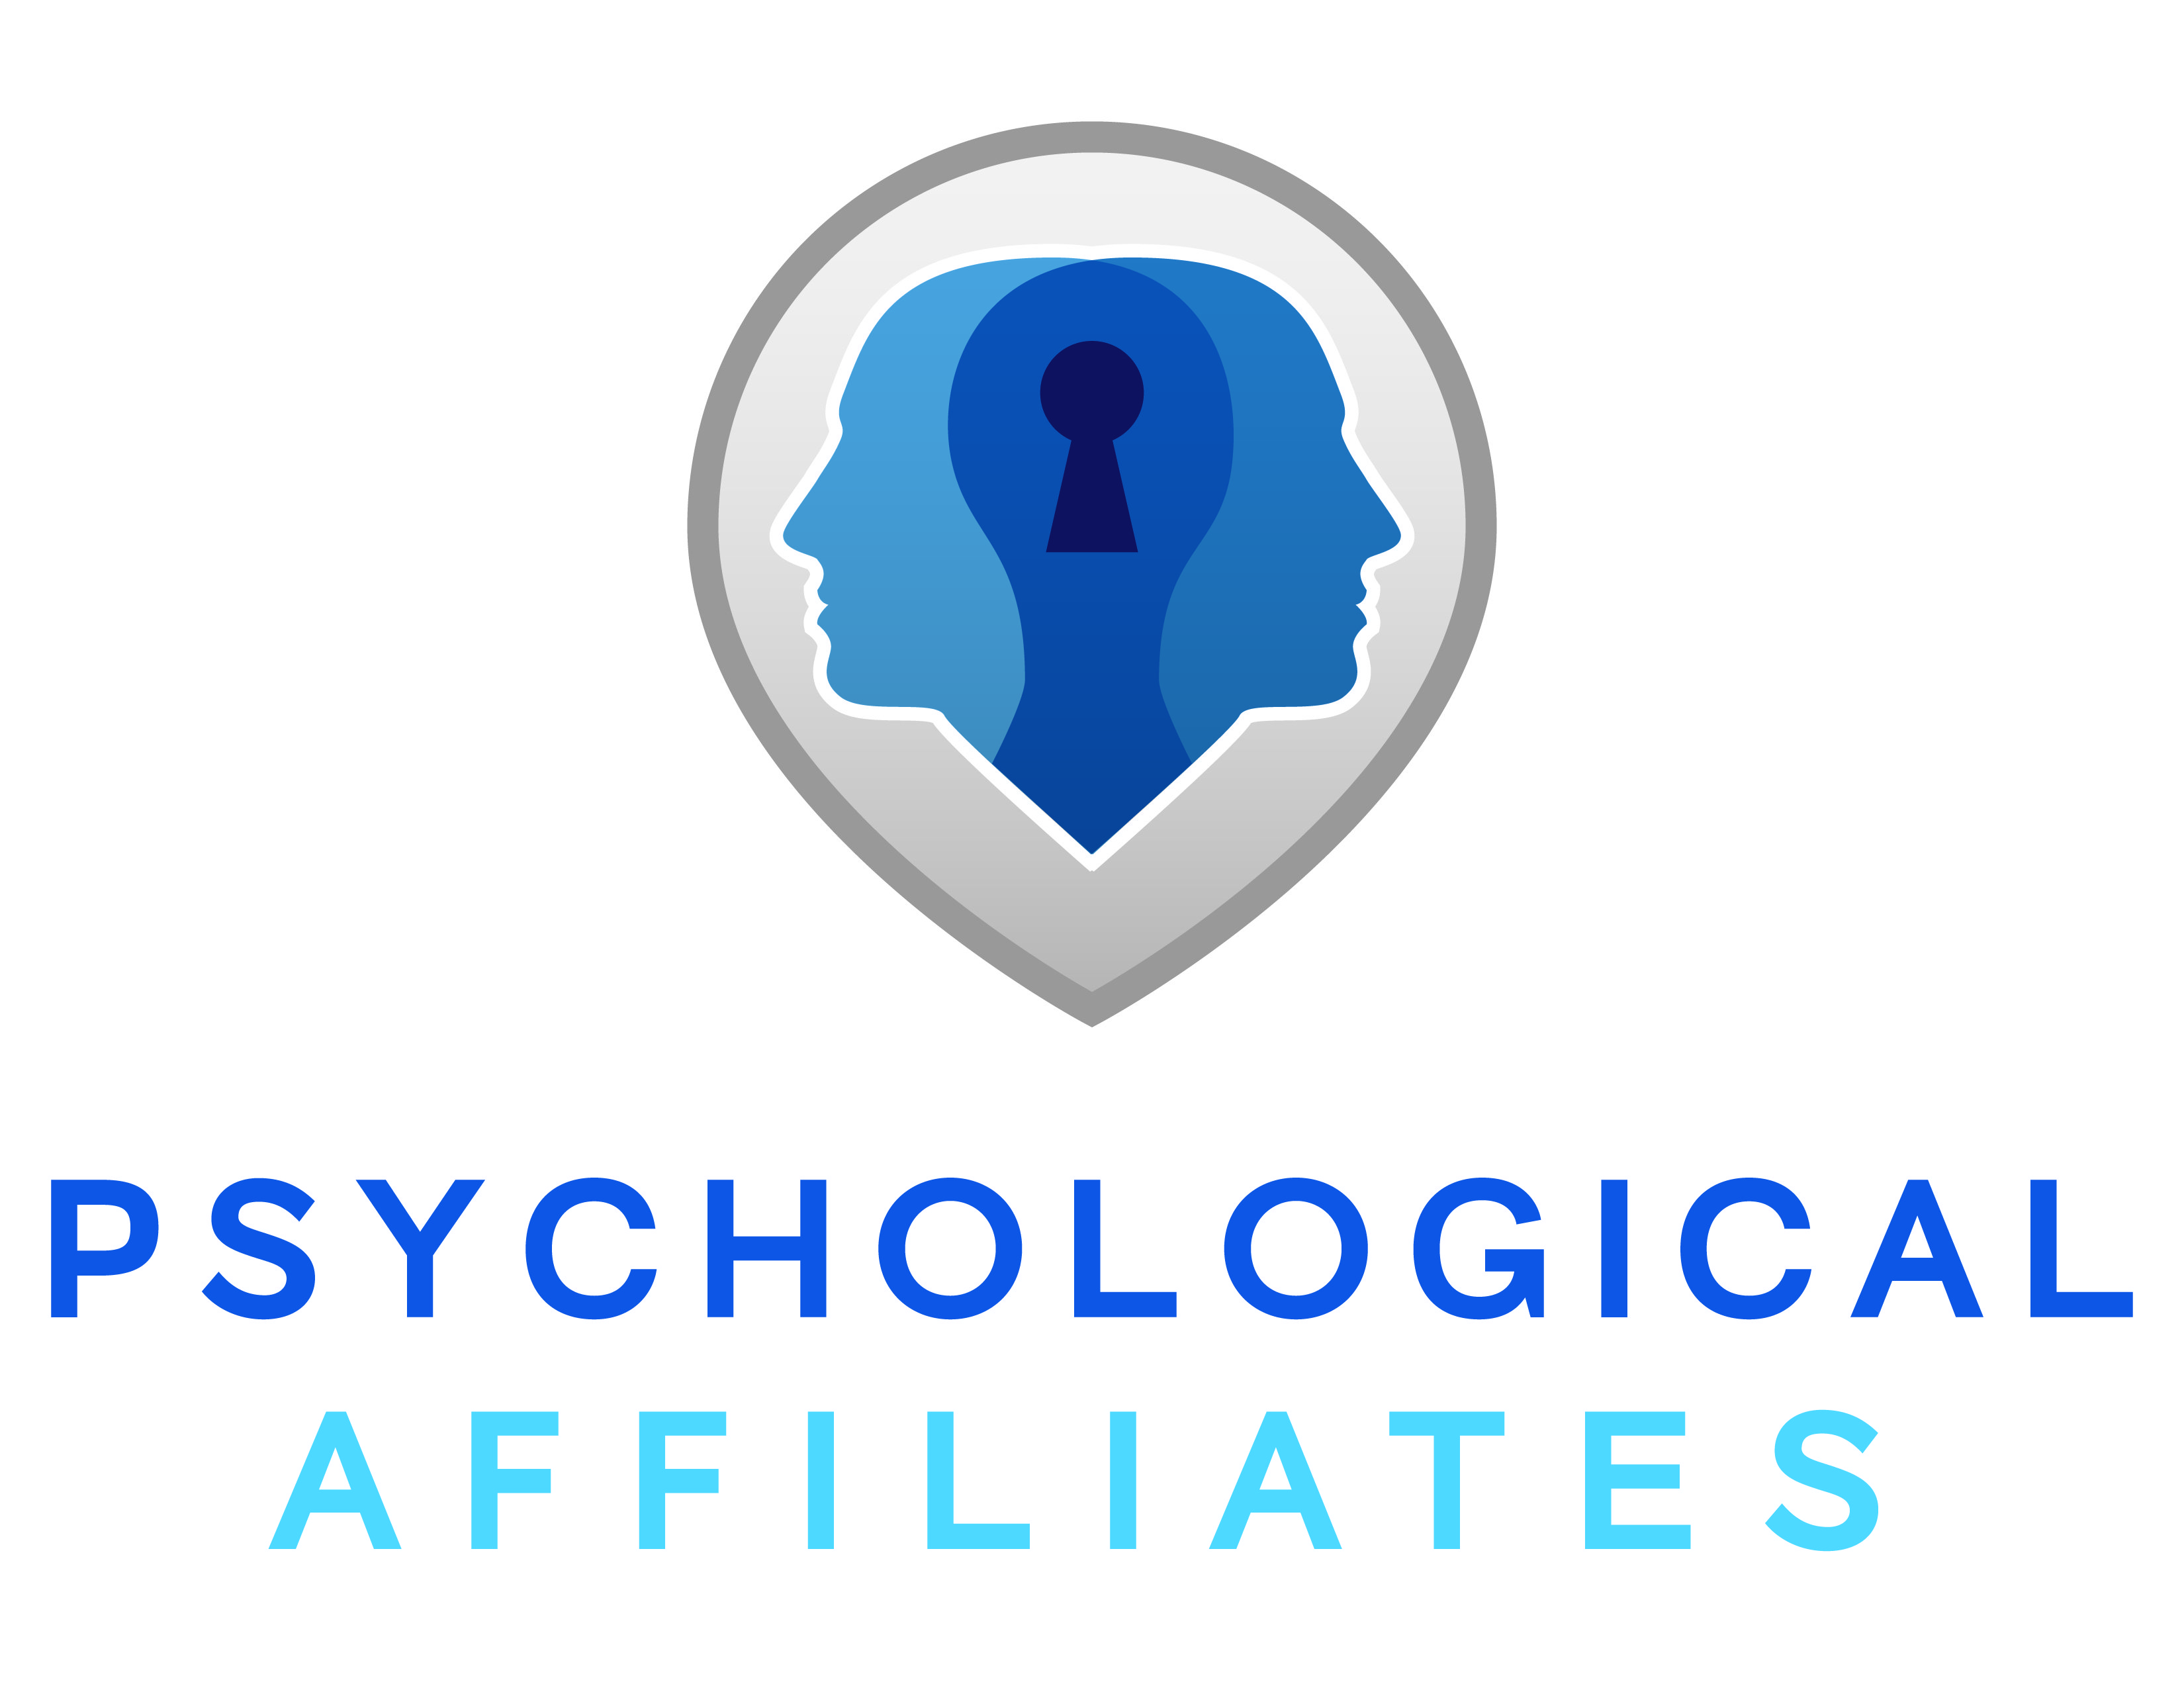 Psychological_Affiliates_Logo Two heads facing away from each other with a keyhole connecting them. Colors are blue and teal.